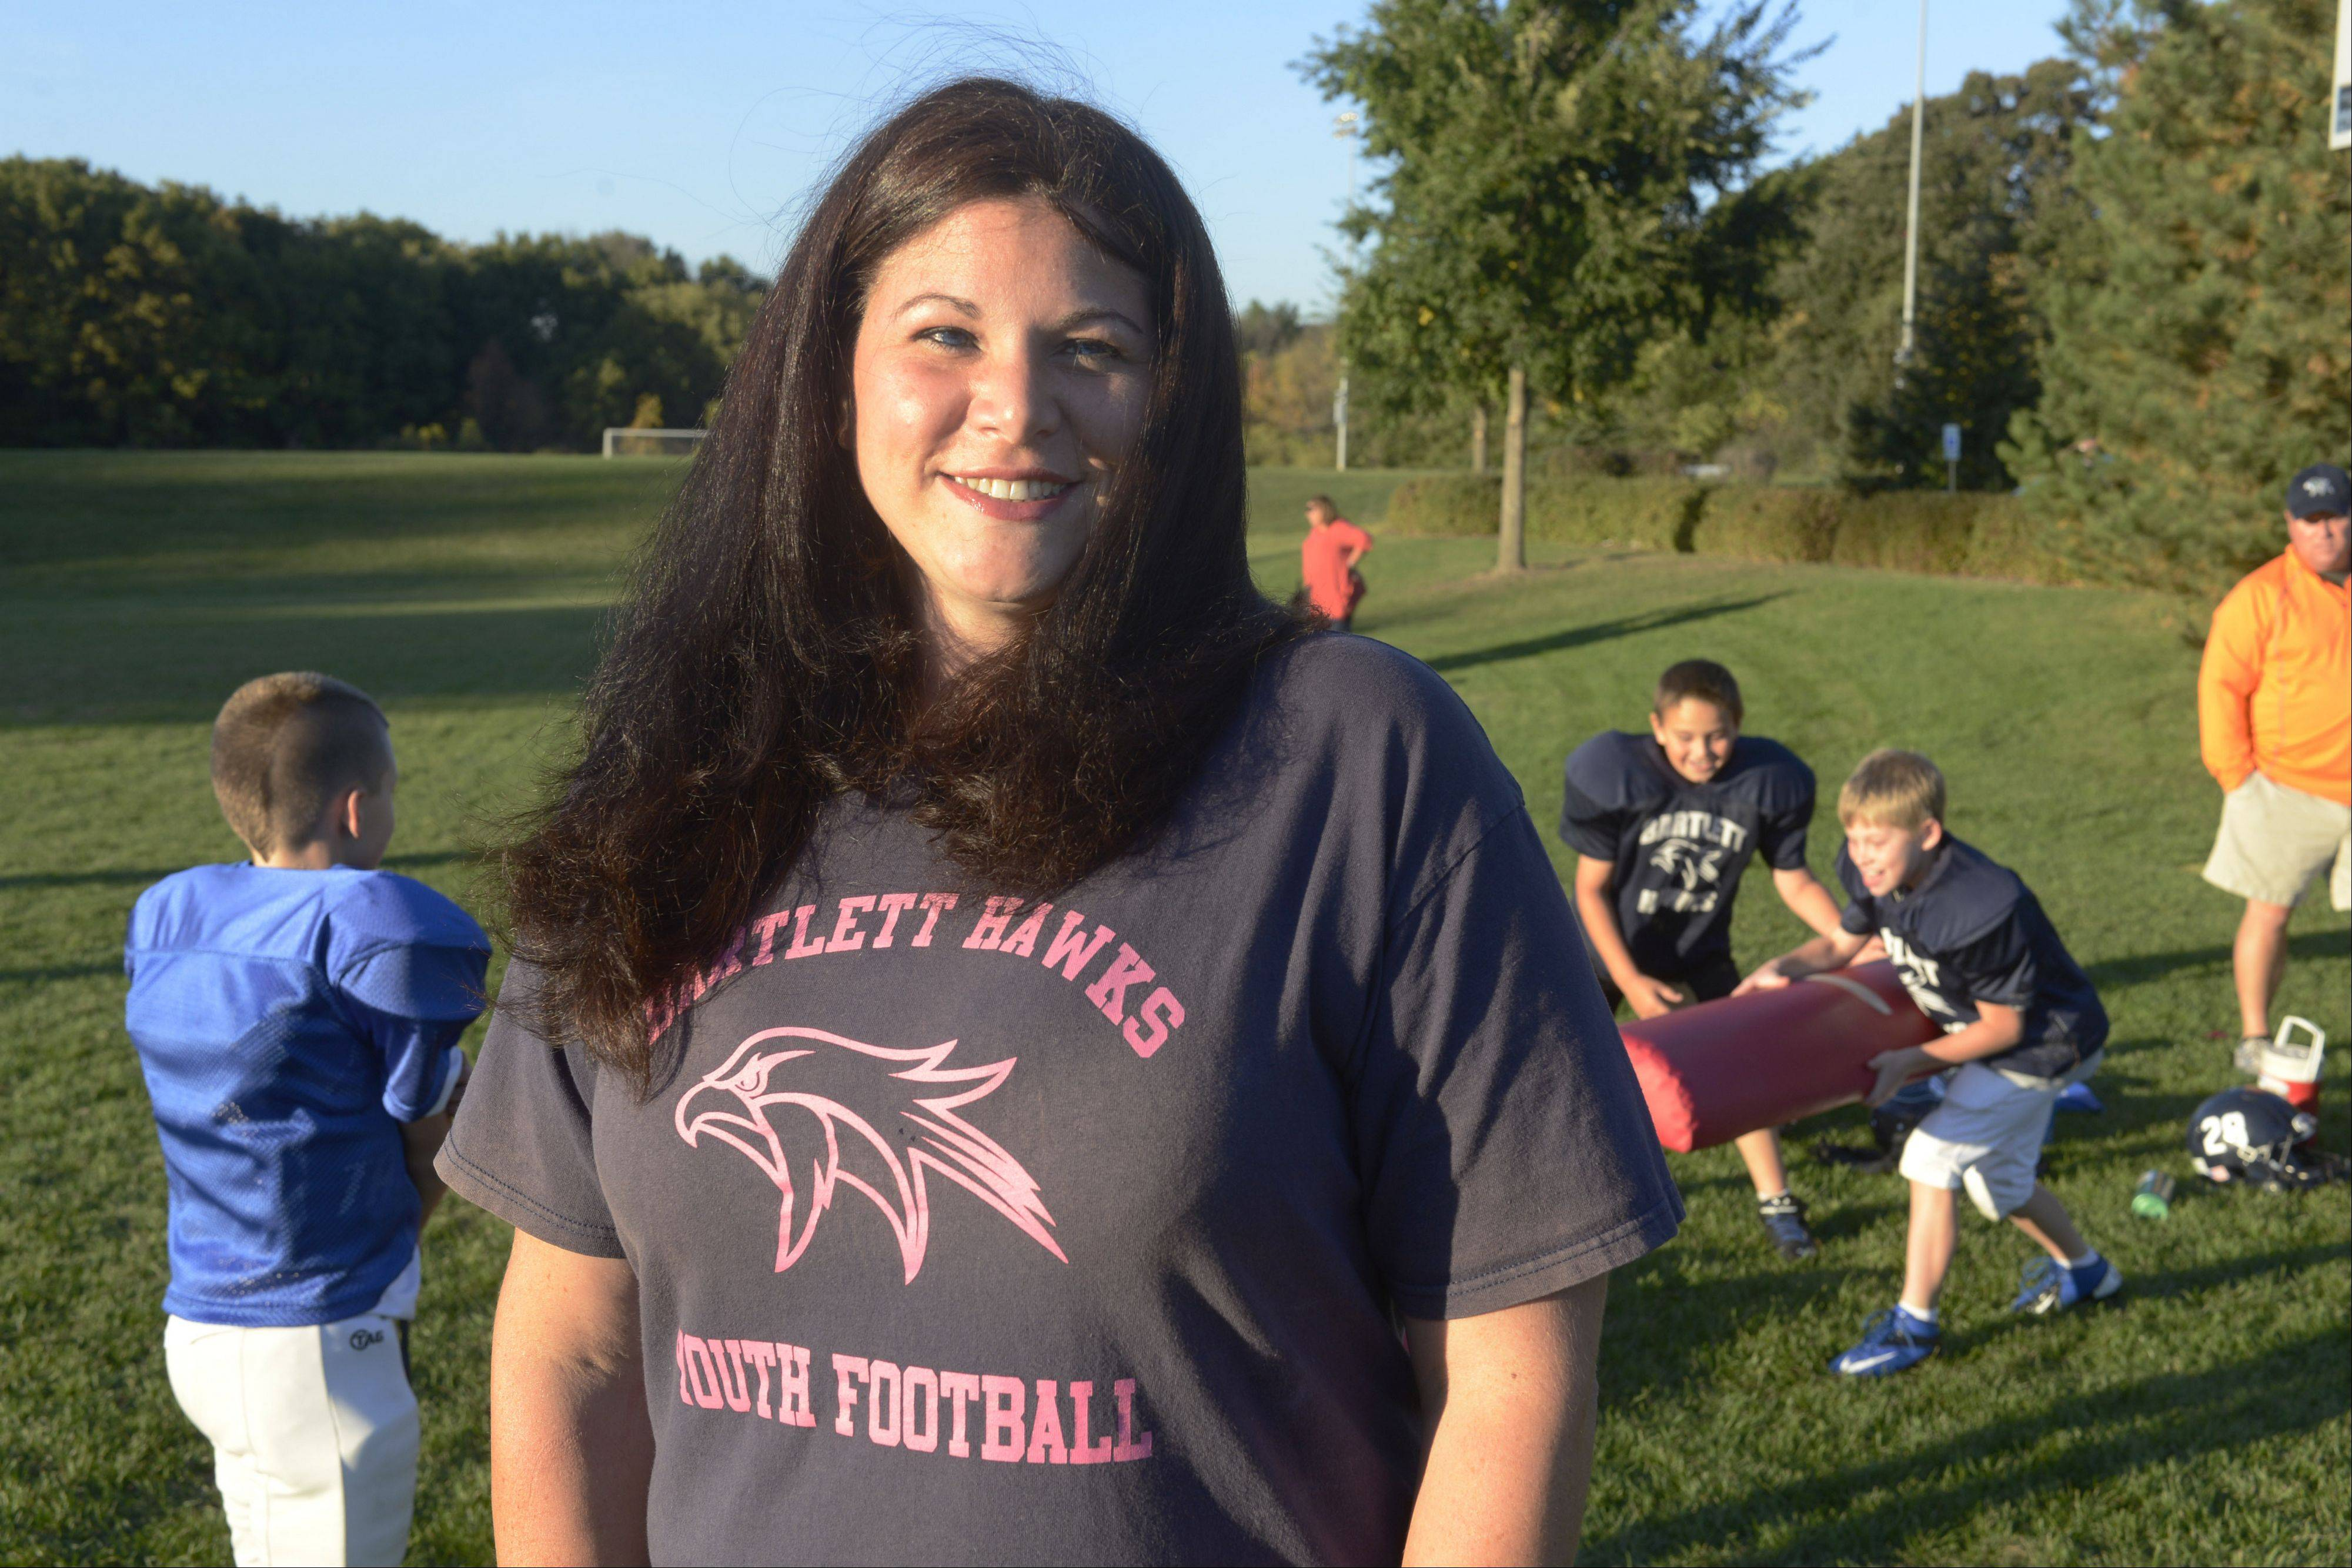 Jennifer Kmiecik of Bartlett became involved with the Bartlett Hawks in 2007. Since then, she's taken on many roles within the organization.